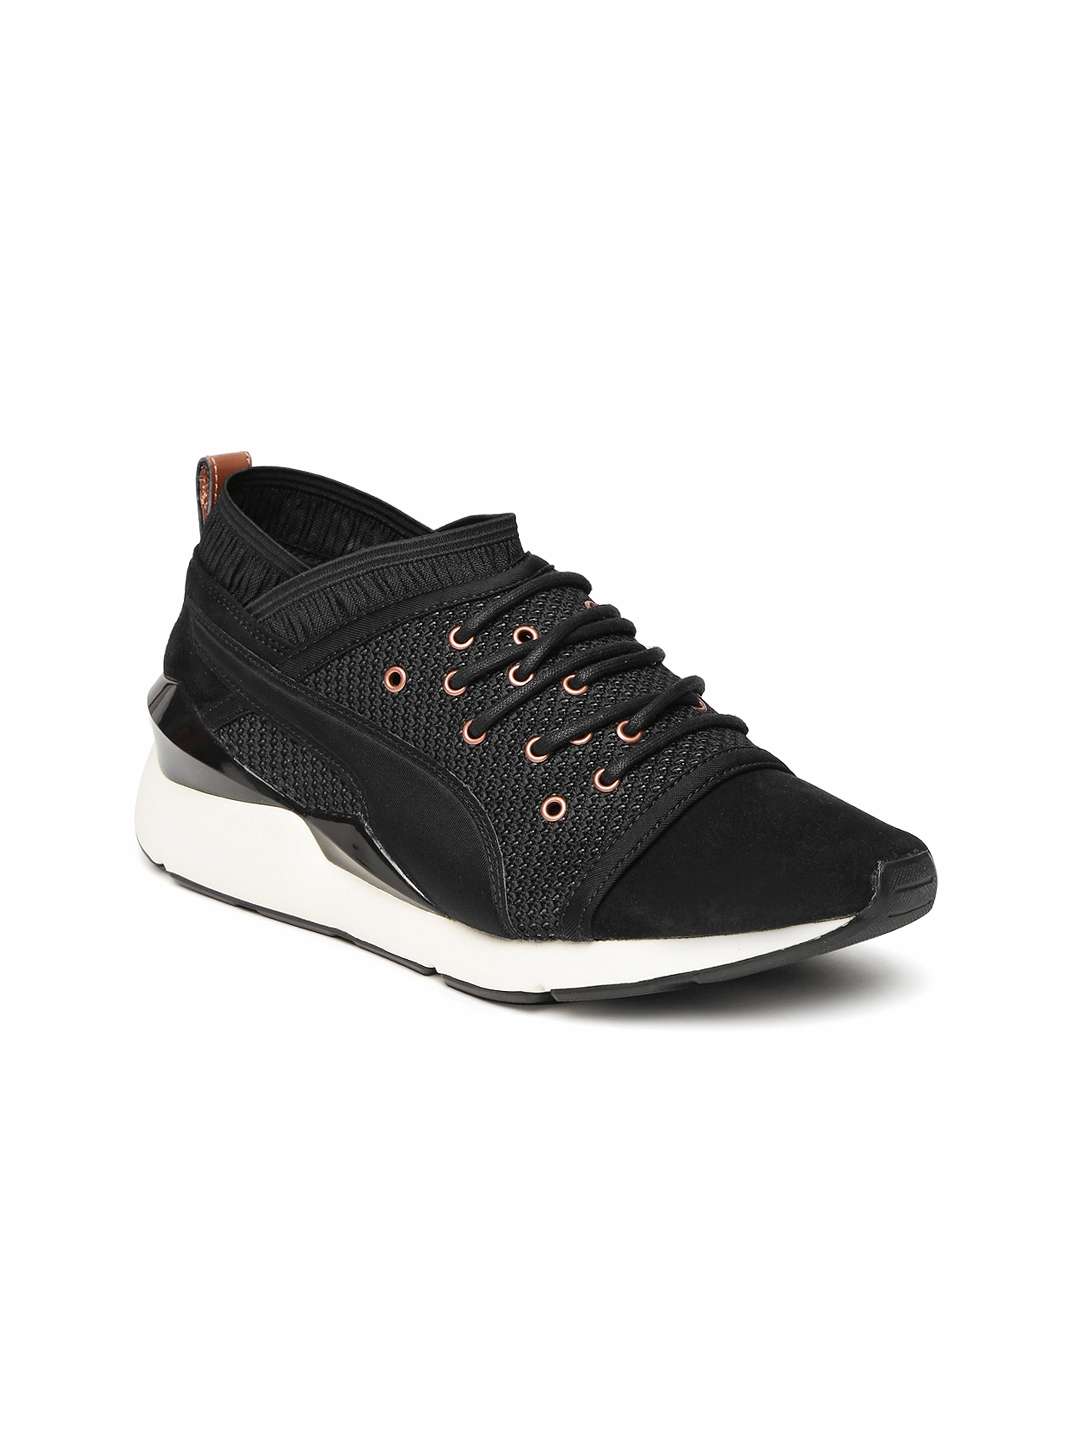 478100bfd7e5 Buy Puma Women Black Pearl VR Sneakers - Casual Shoes for Women ...